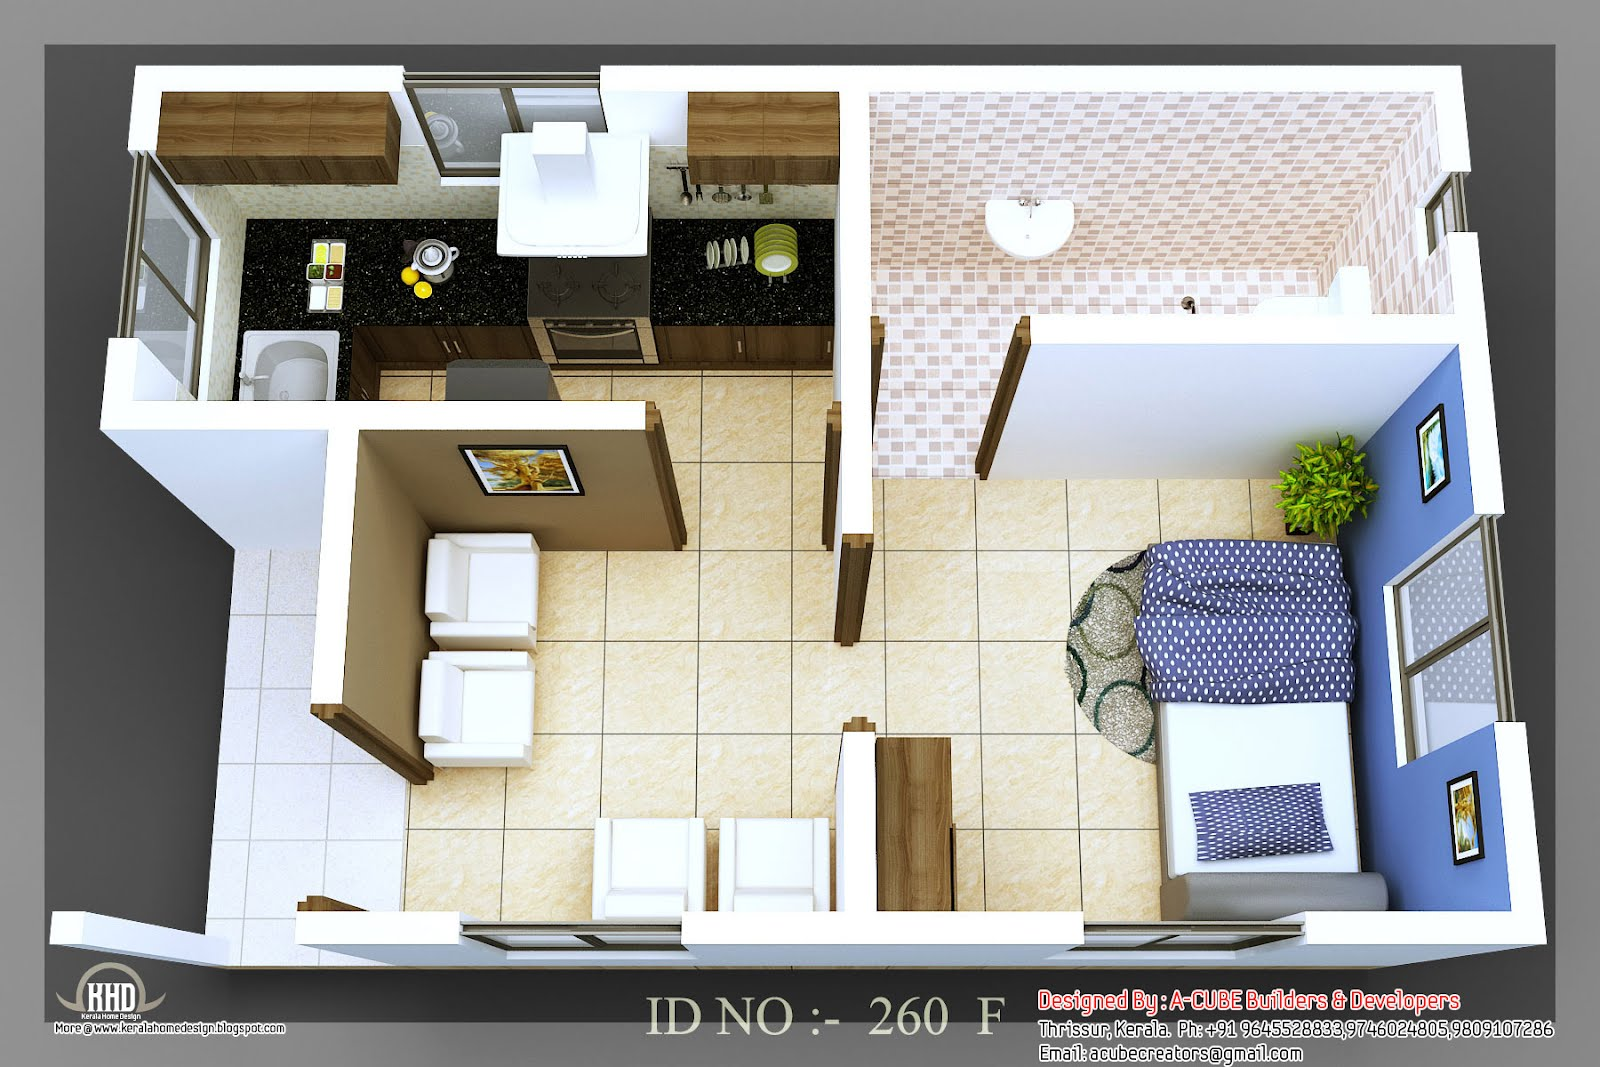 3d isometric views of small house plans home appliance for Simple interior design for small house